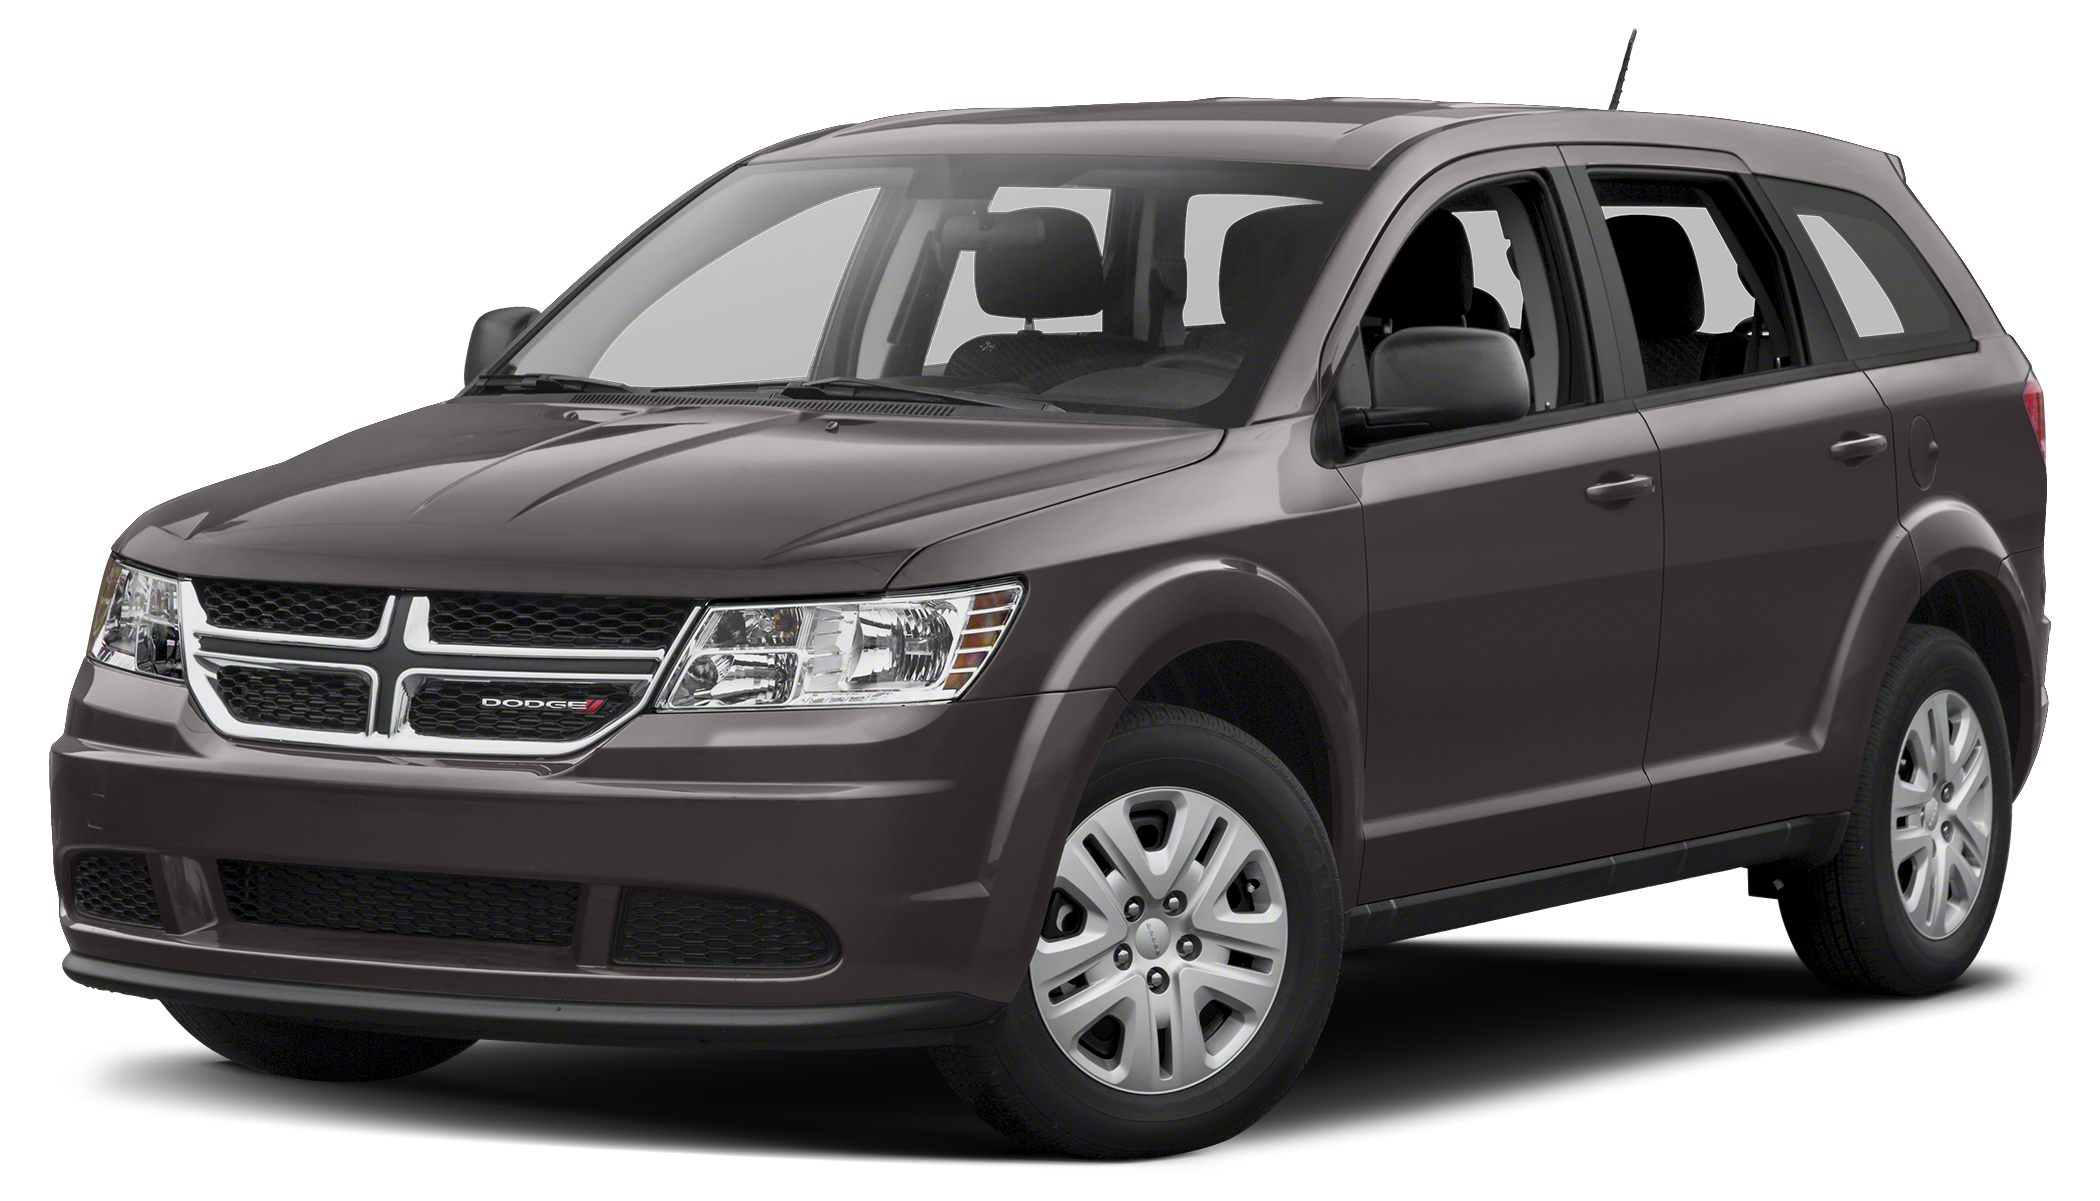 2015 Dodge Journey SE If you are interested in this vehicleand have questions or need information